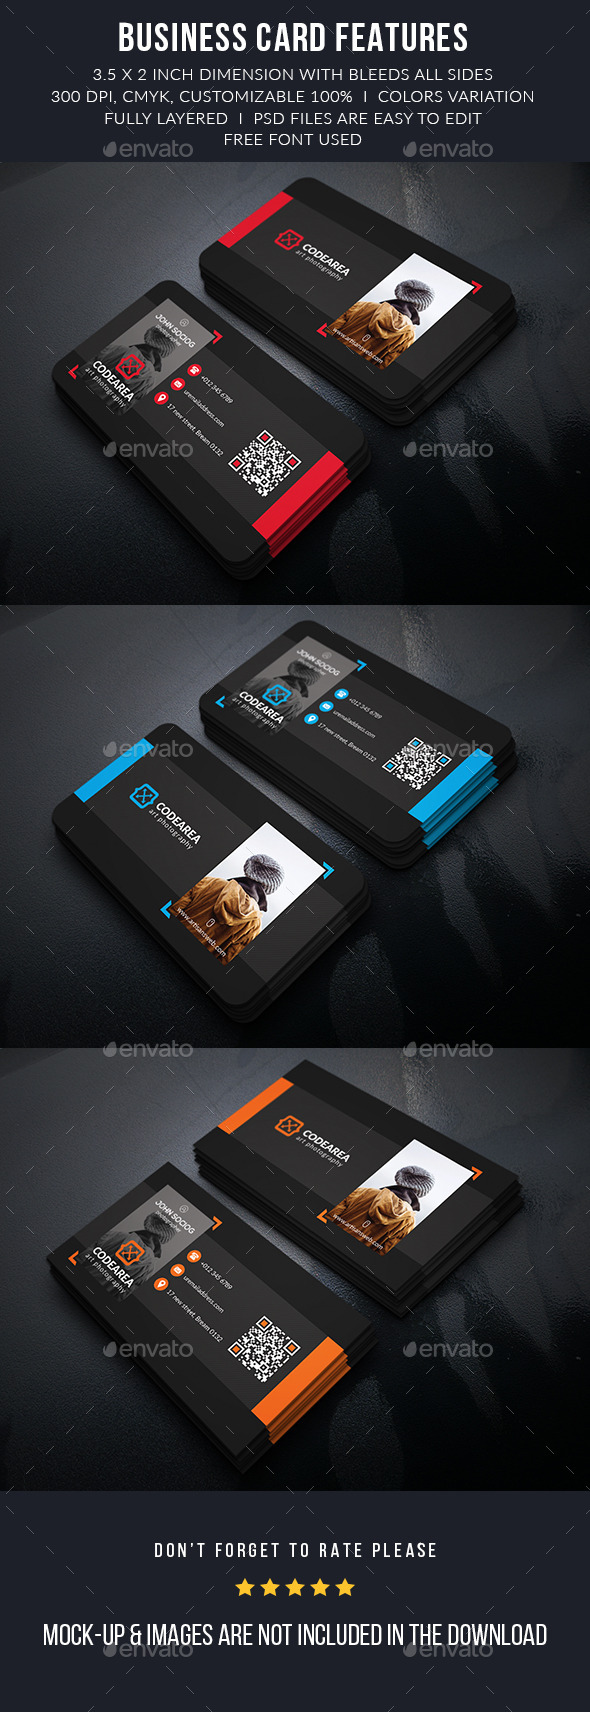 Professional Photography Busainess Card - Business Cards Print Templates